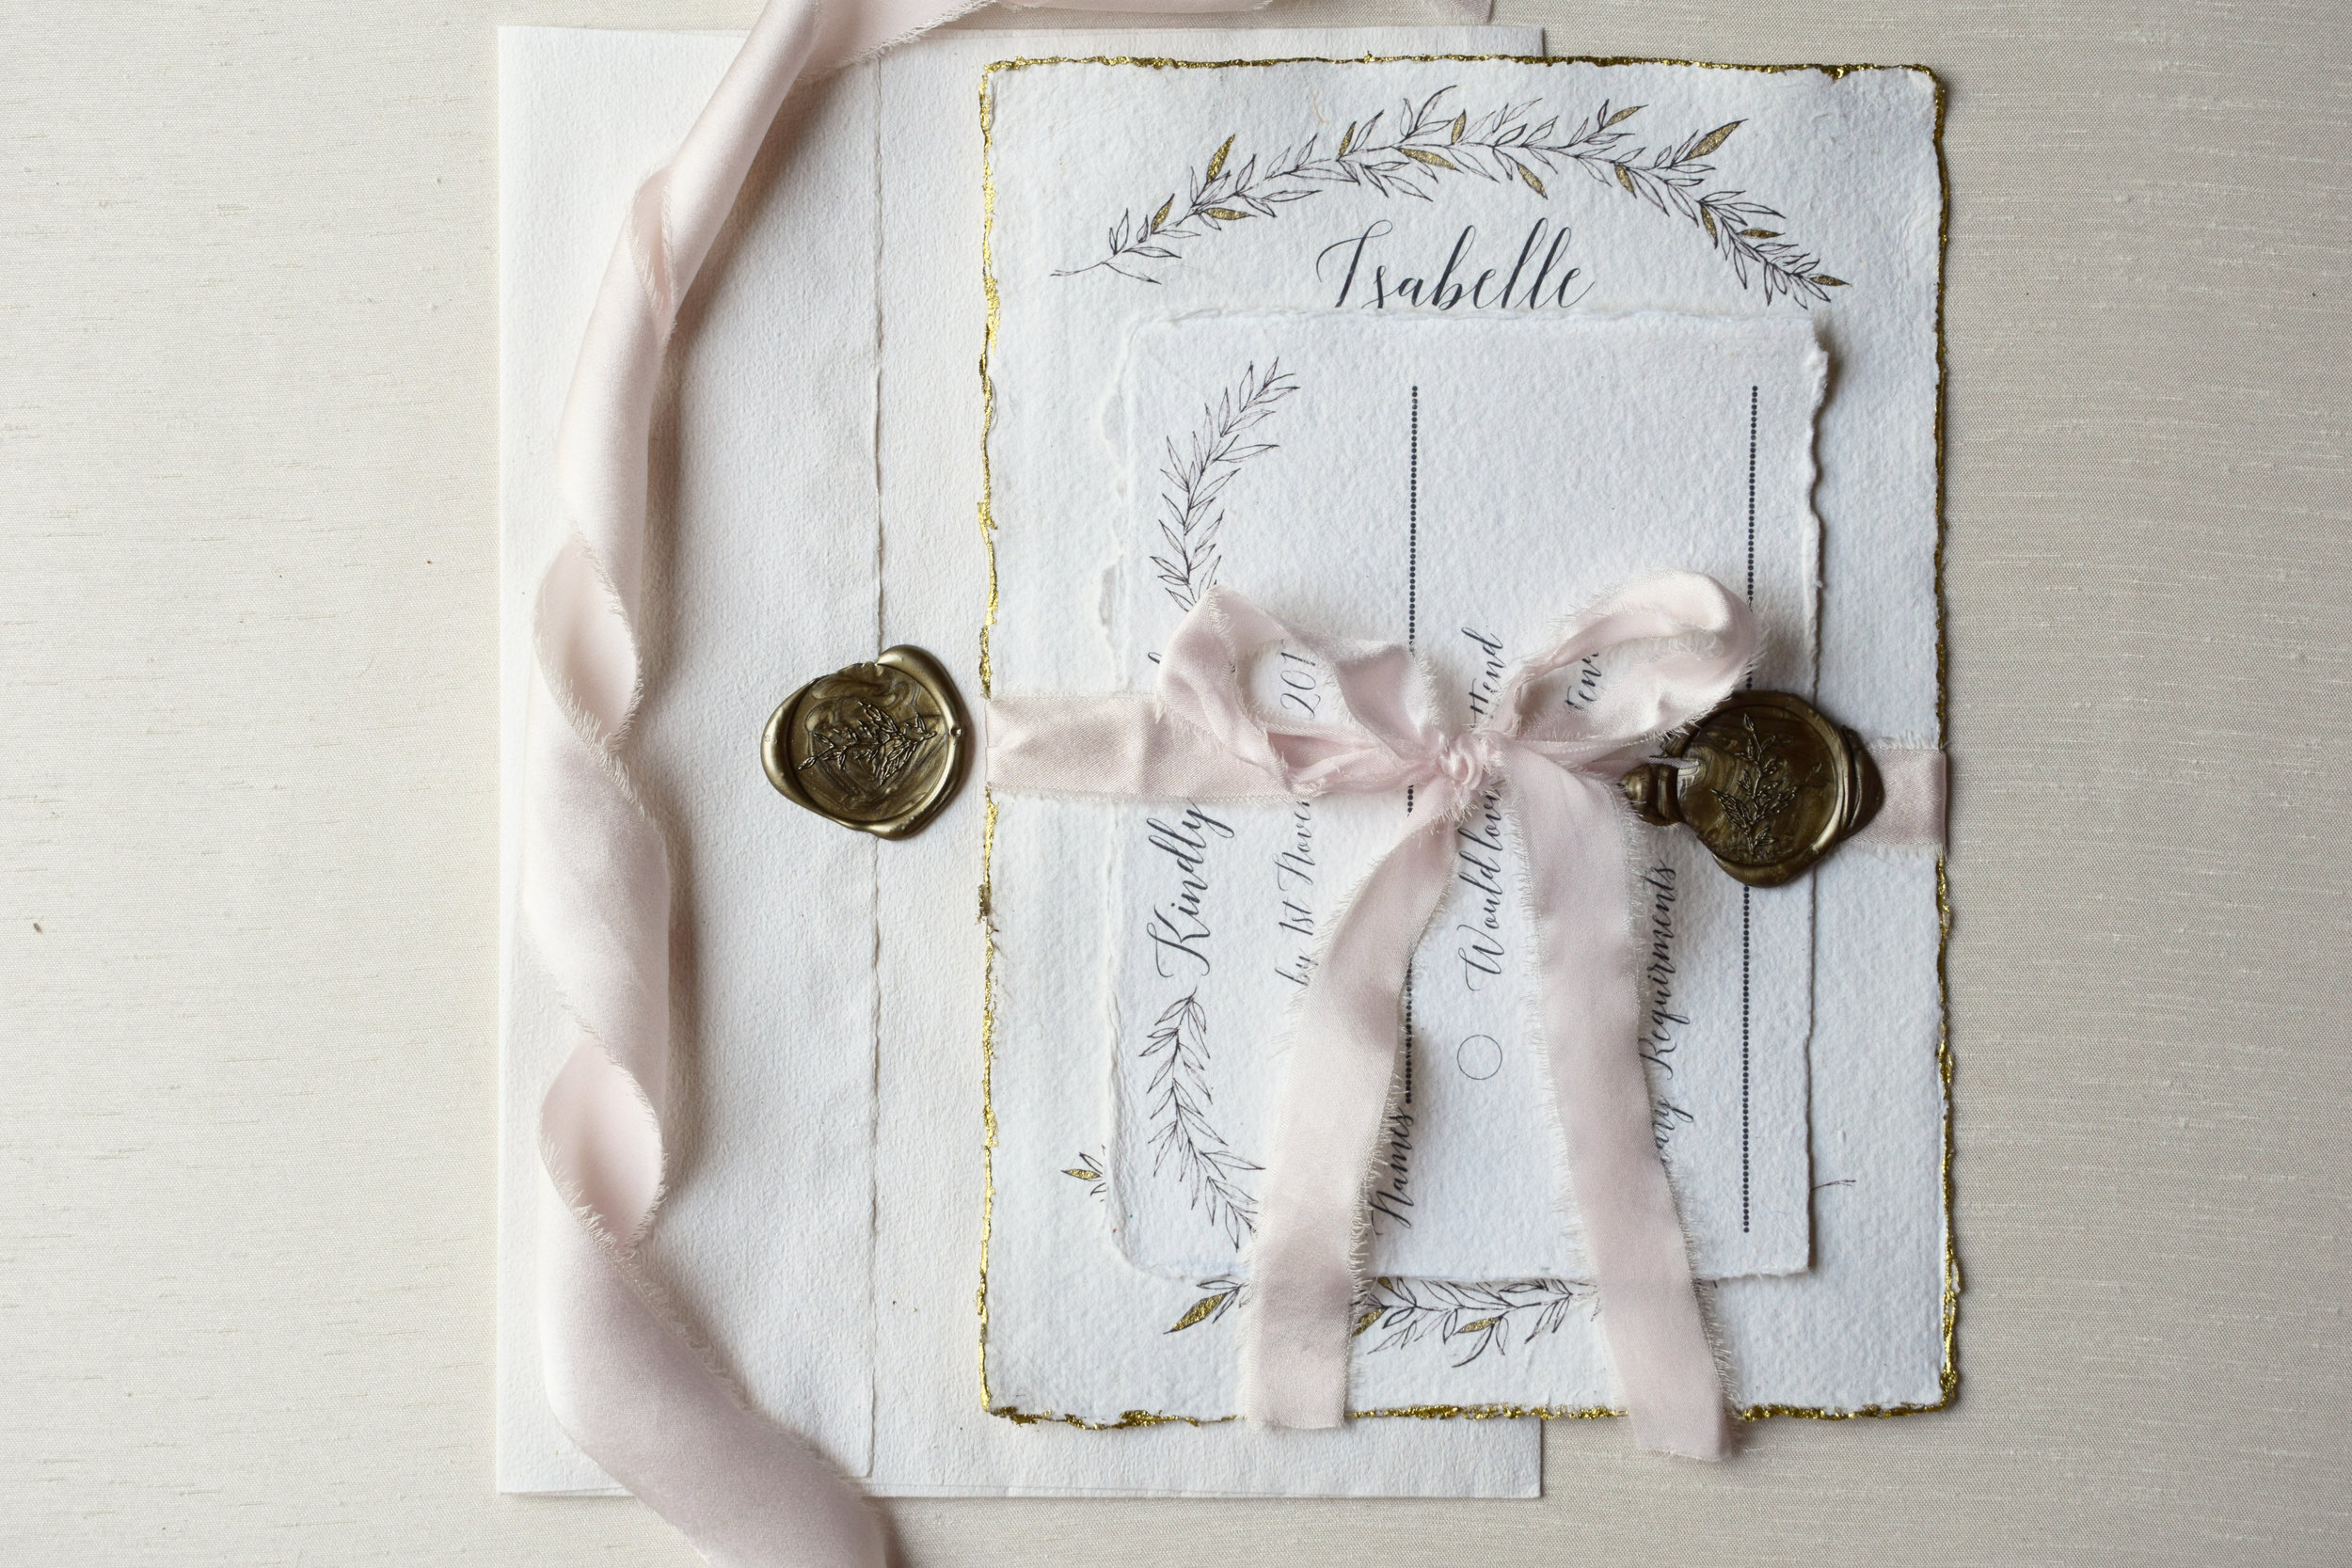 Fine Art Wedding Invitation.jpg